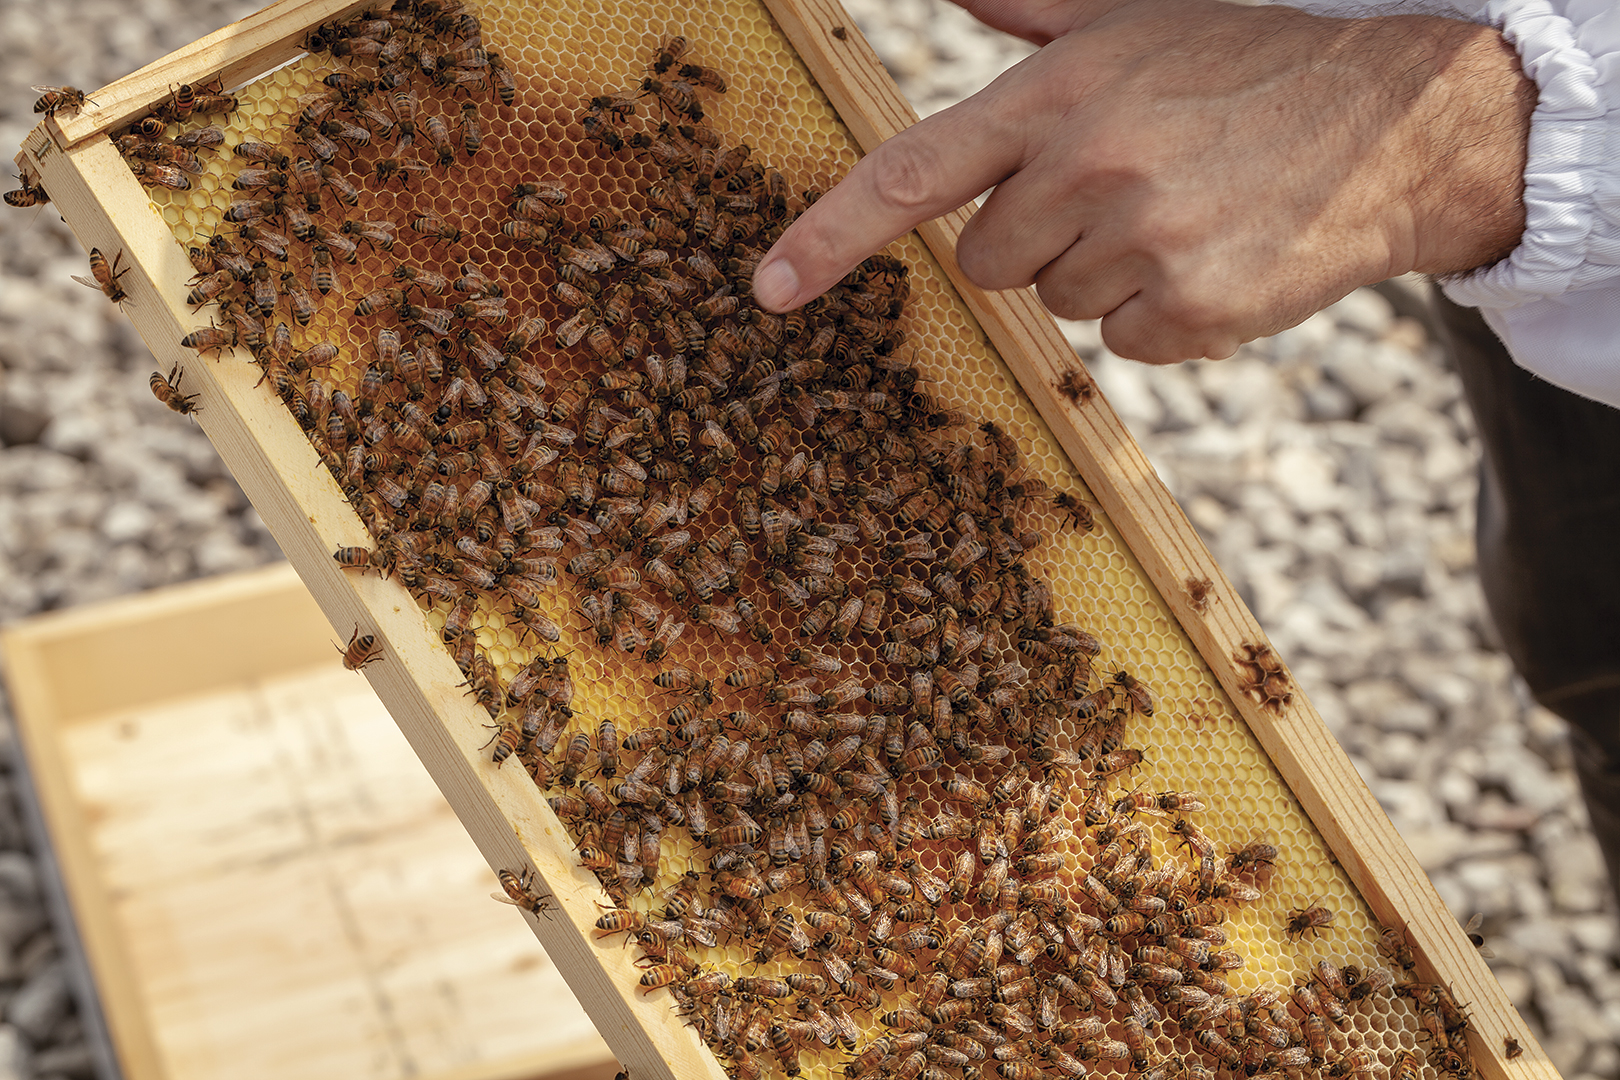 Beekeeper points at bees on beehive frame.